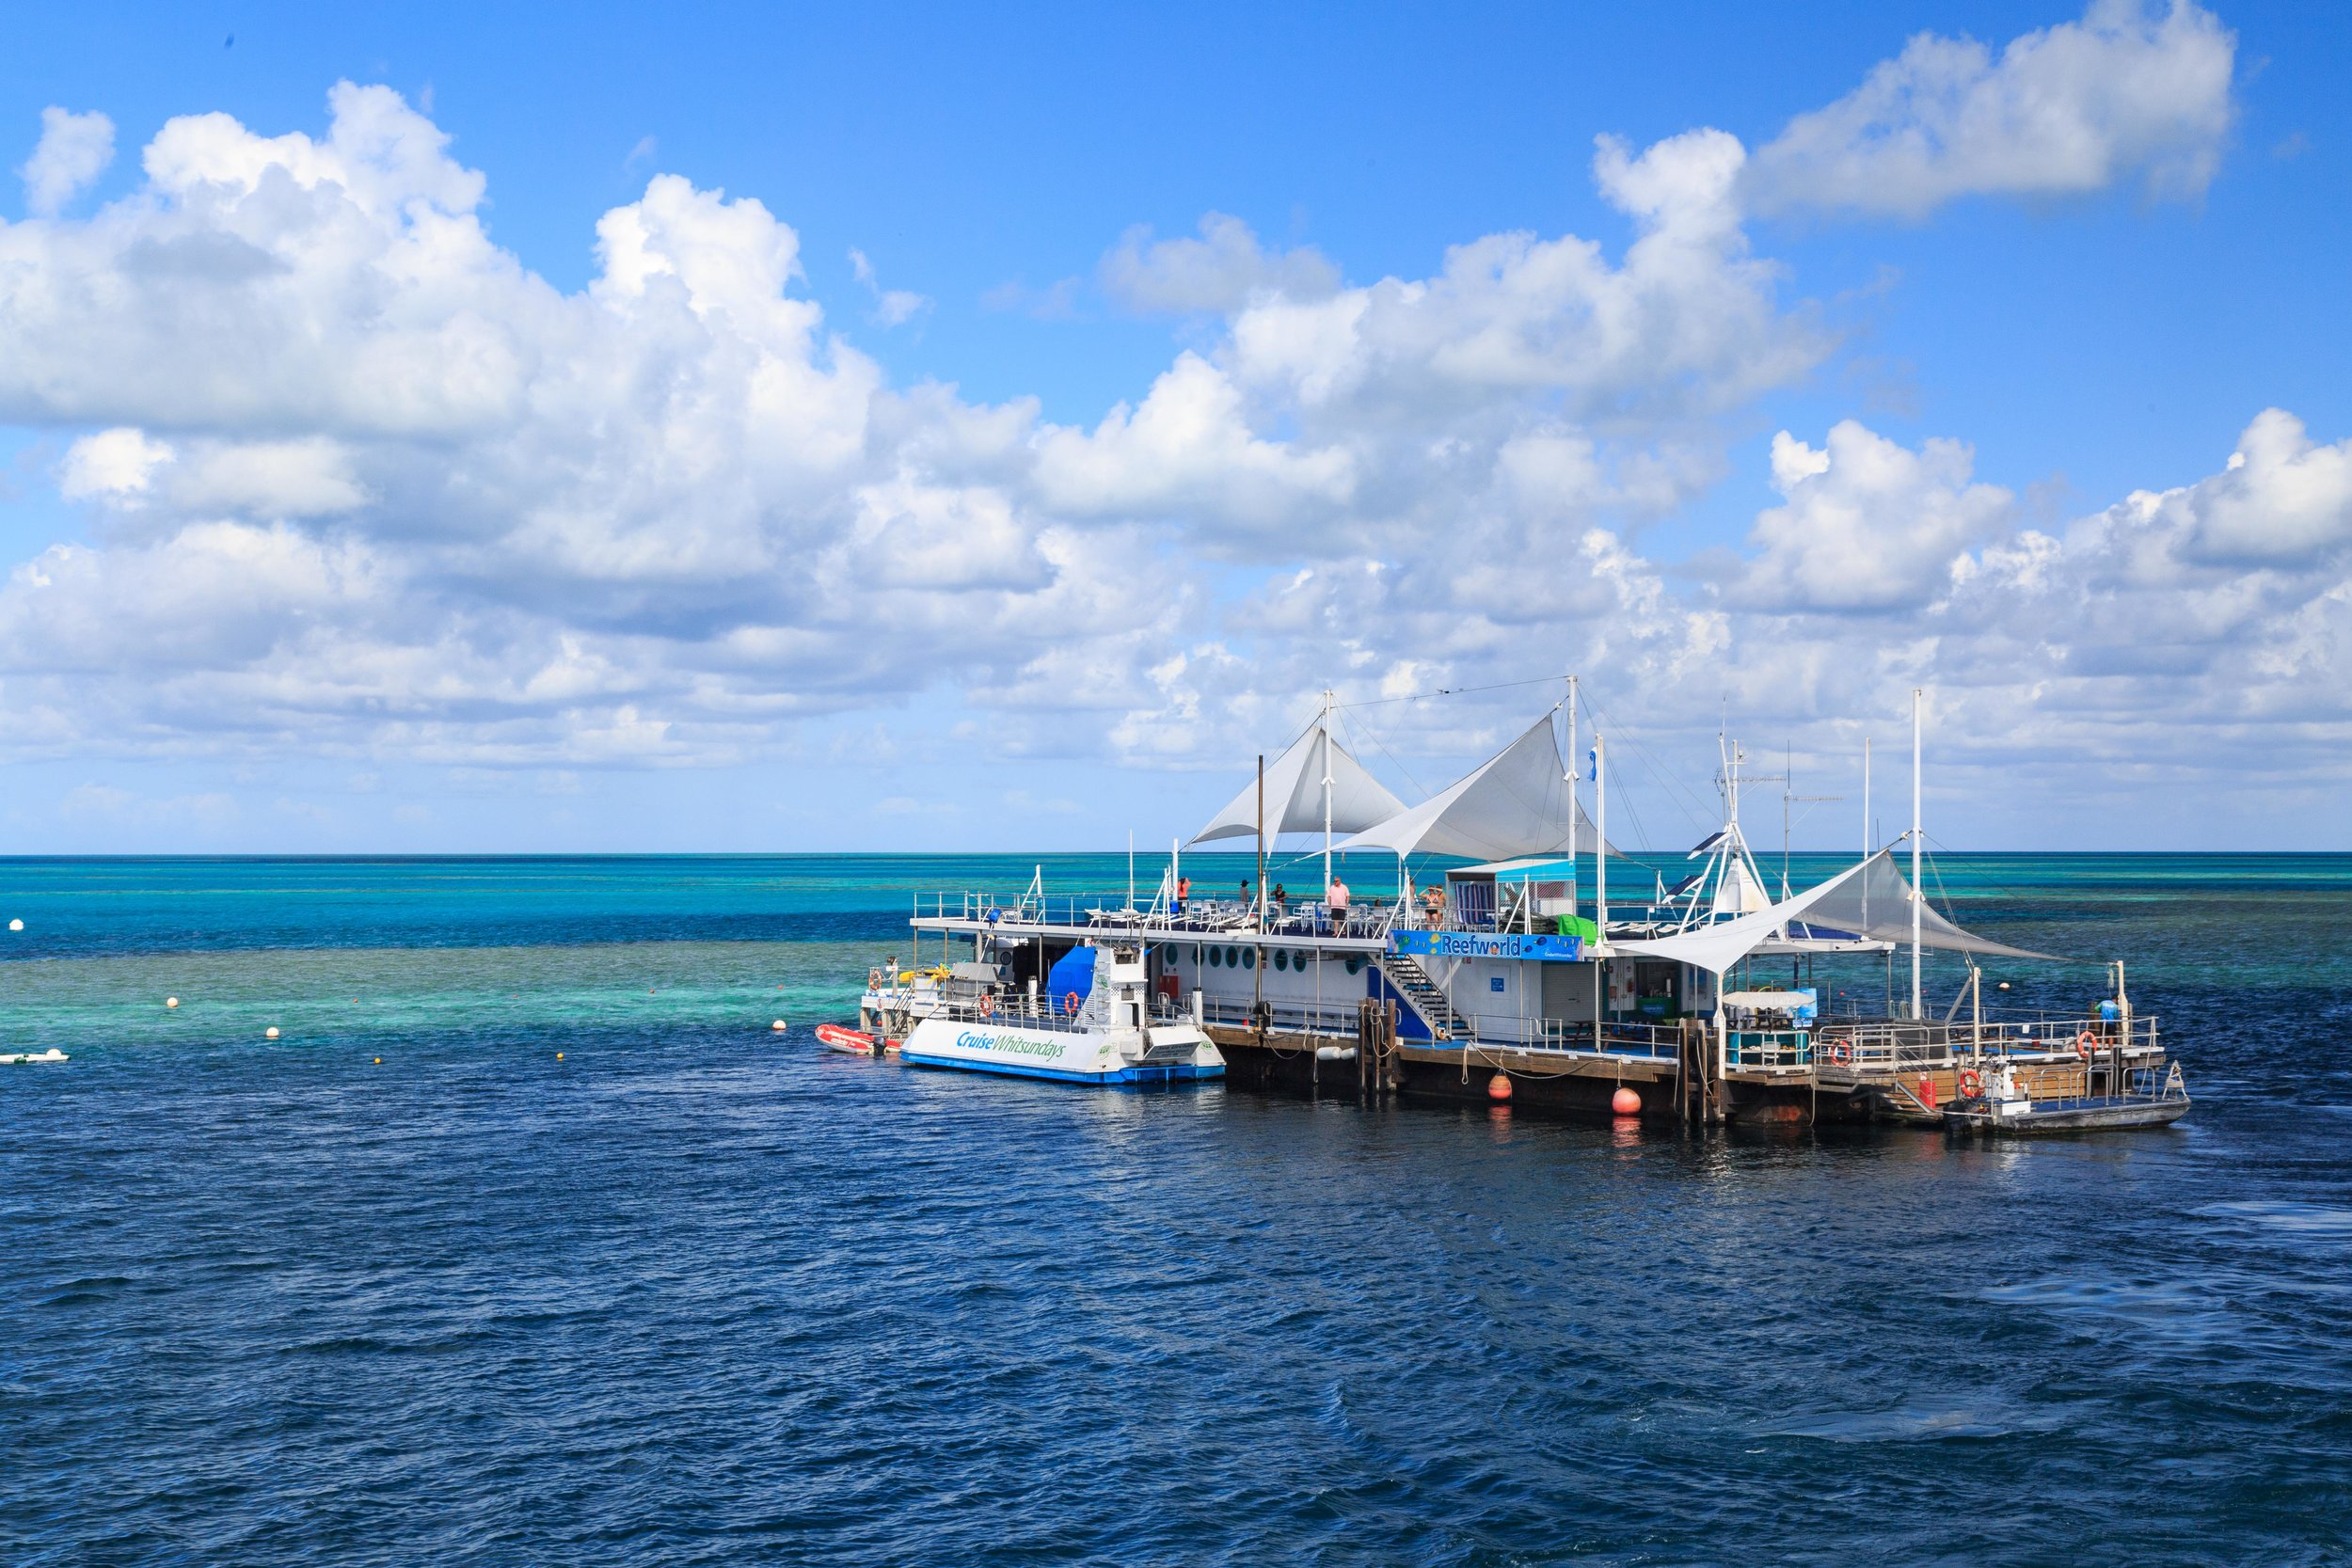 The Pontoon for Reef Sleep